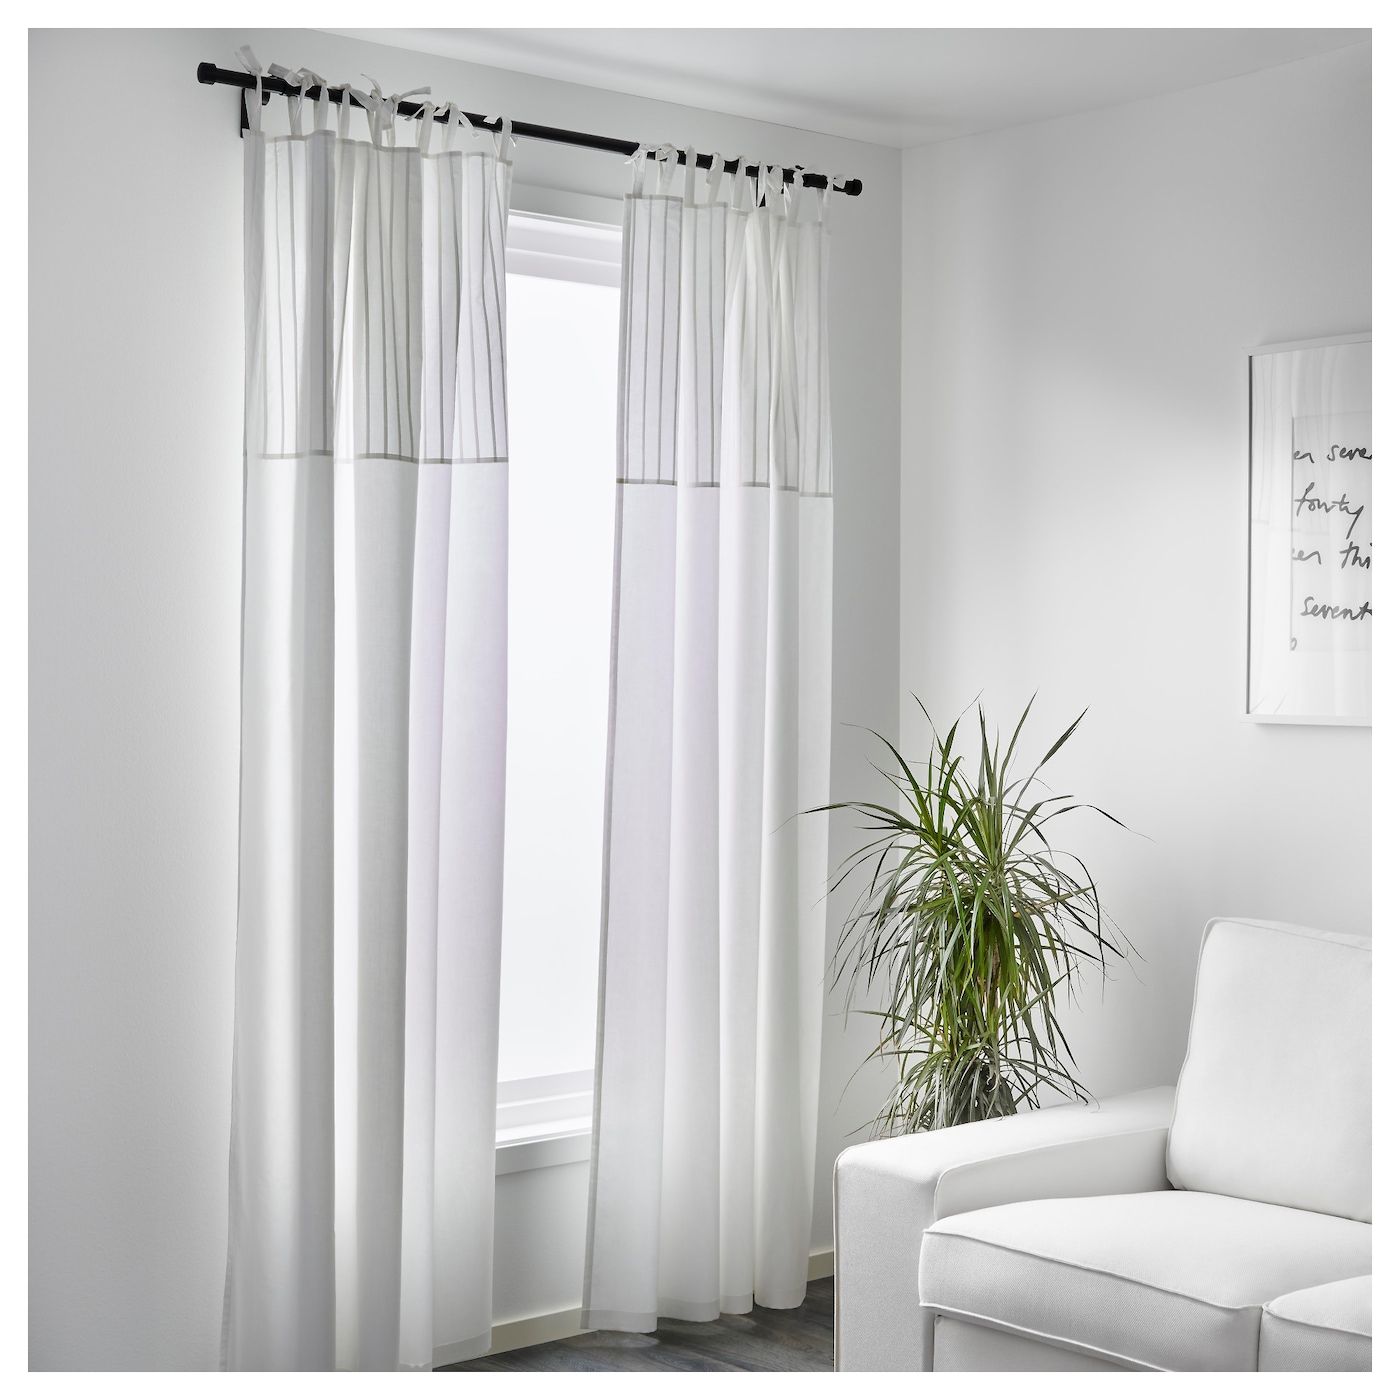 P rlblad curtains 1 pair white 145x250 cm ikea for White curtains ikea